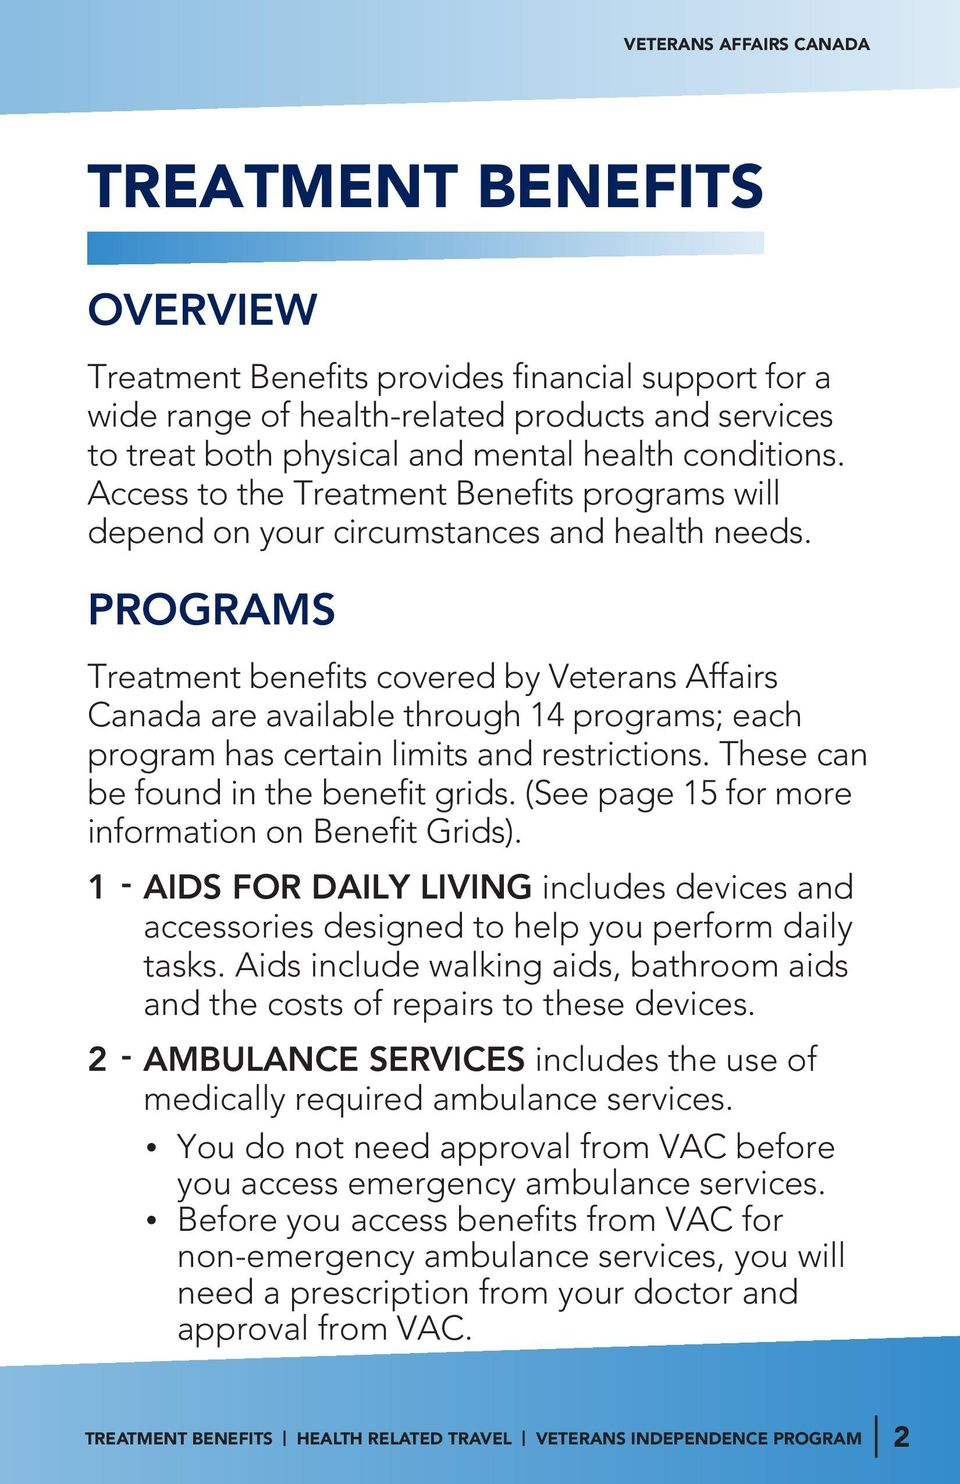 PROGRAMS Treatment benefits covered by Veterans Affairs Canada are available through 14 programs; each program has certain limits and restrictions. These can be found in the benefit grids.